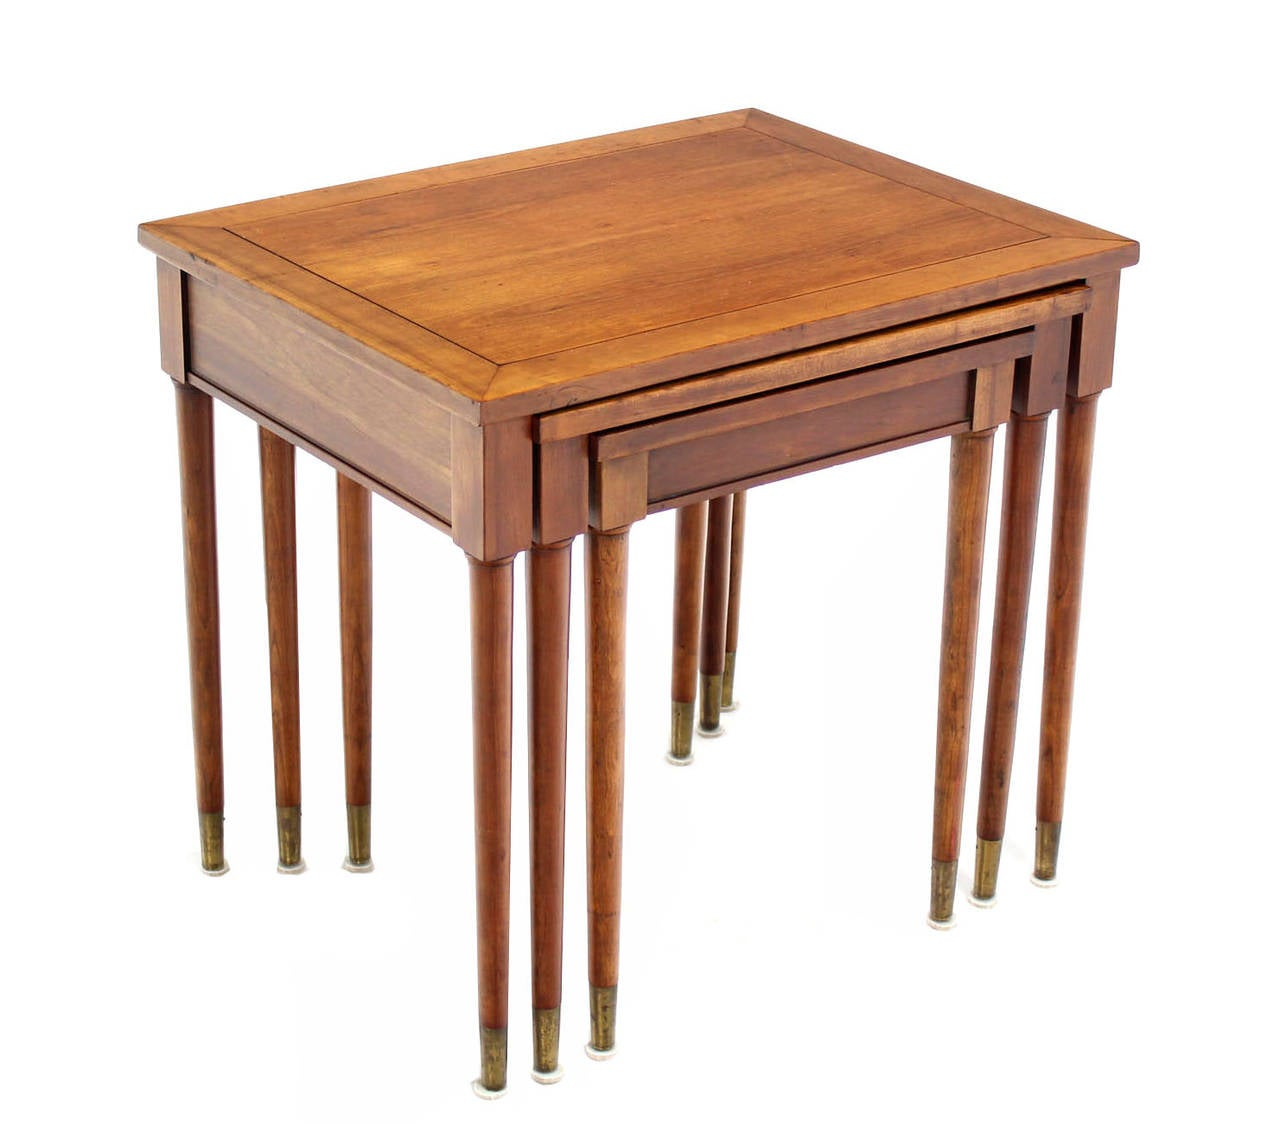 Set of three mid-century modern walnut or cherry nesting tables.